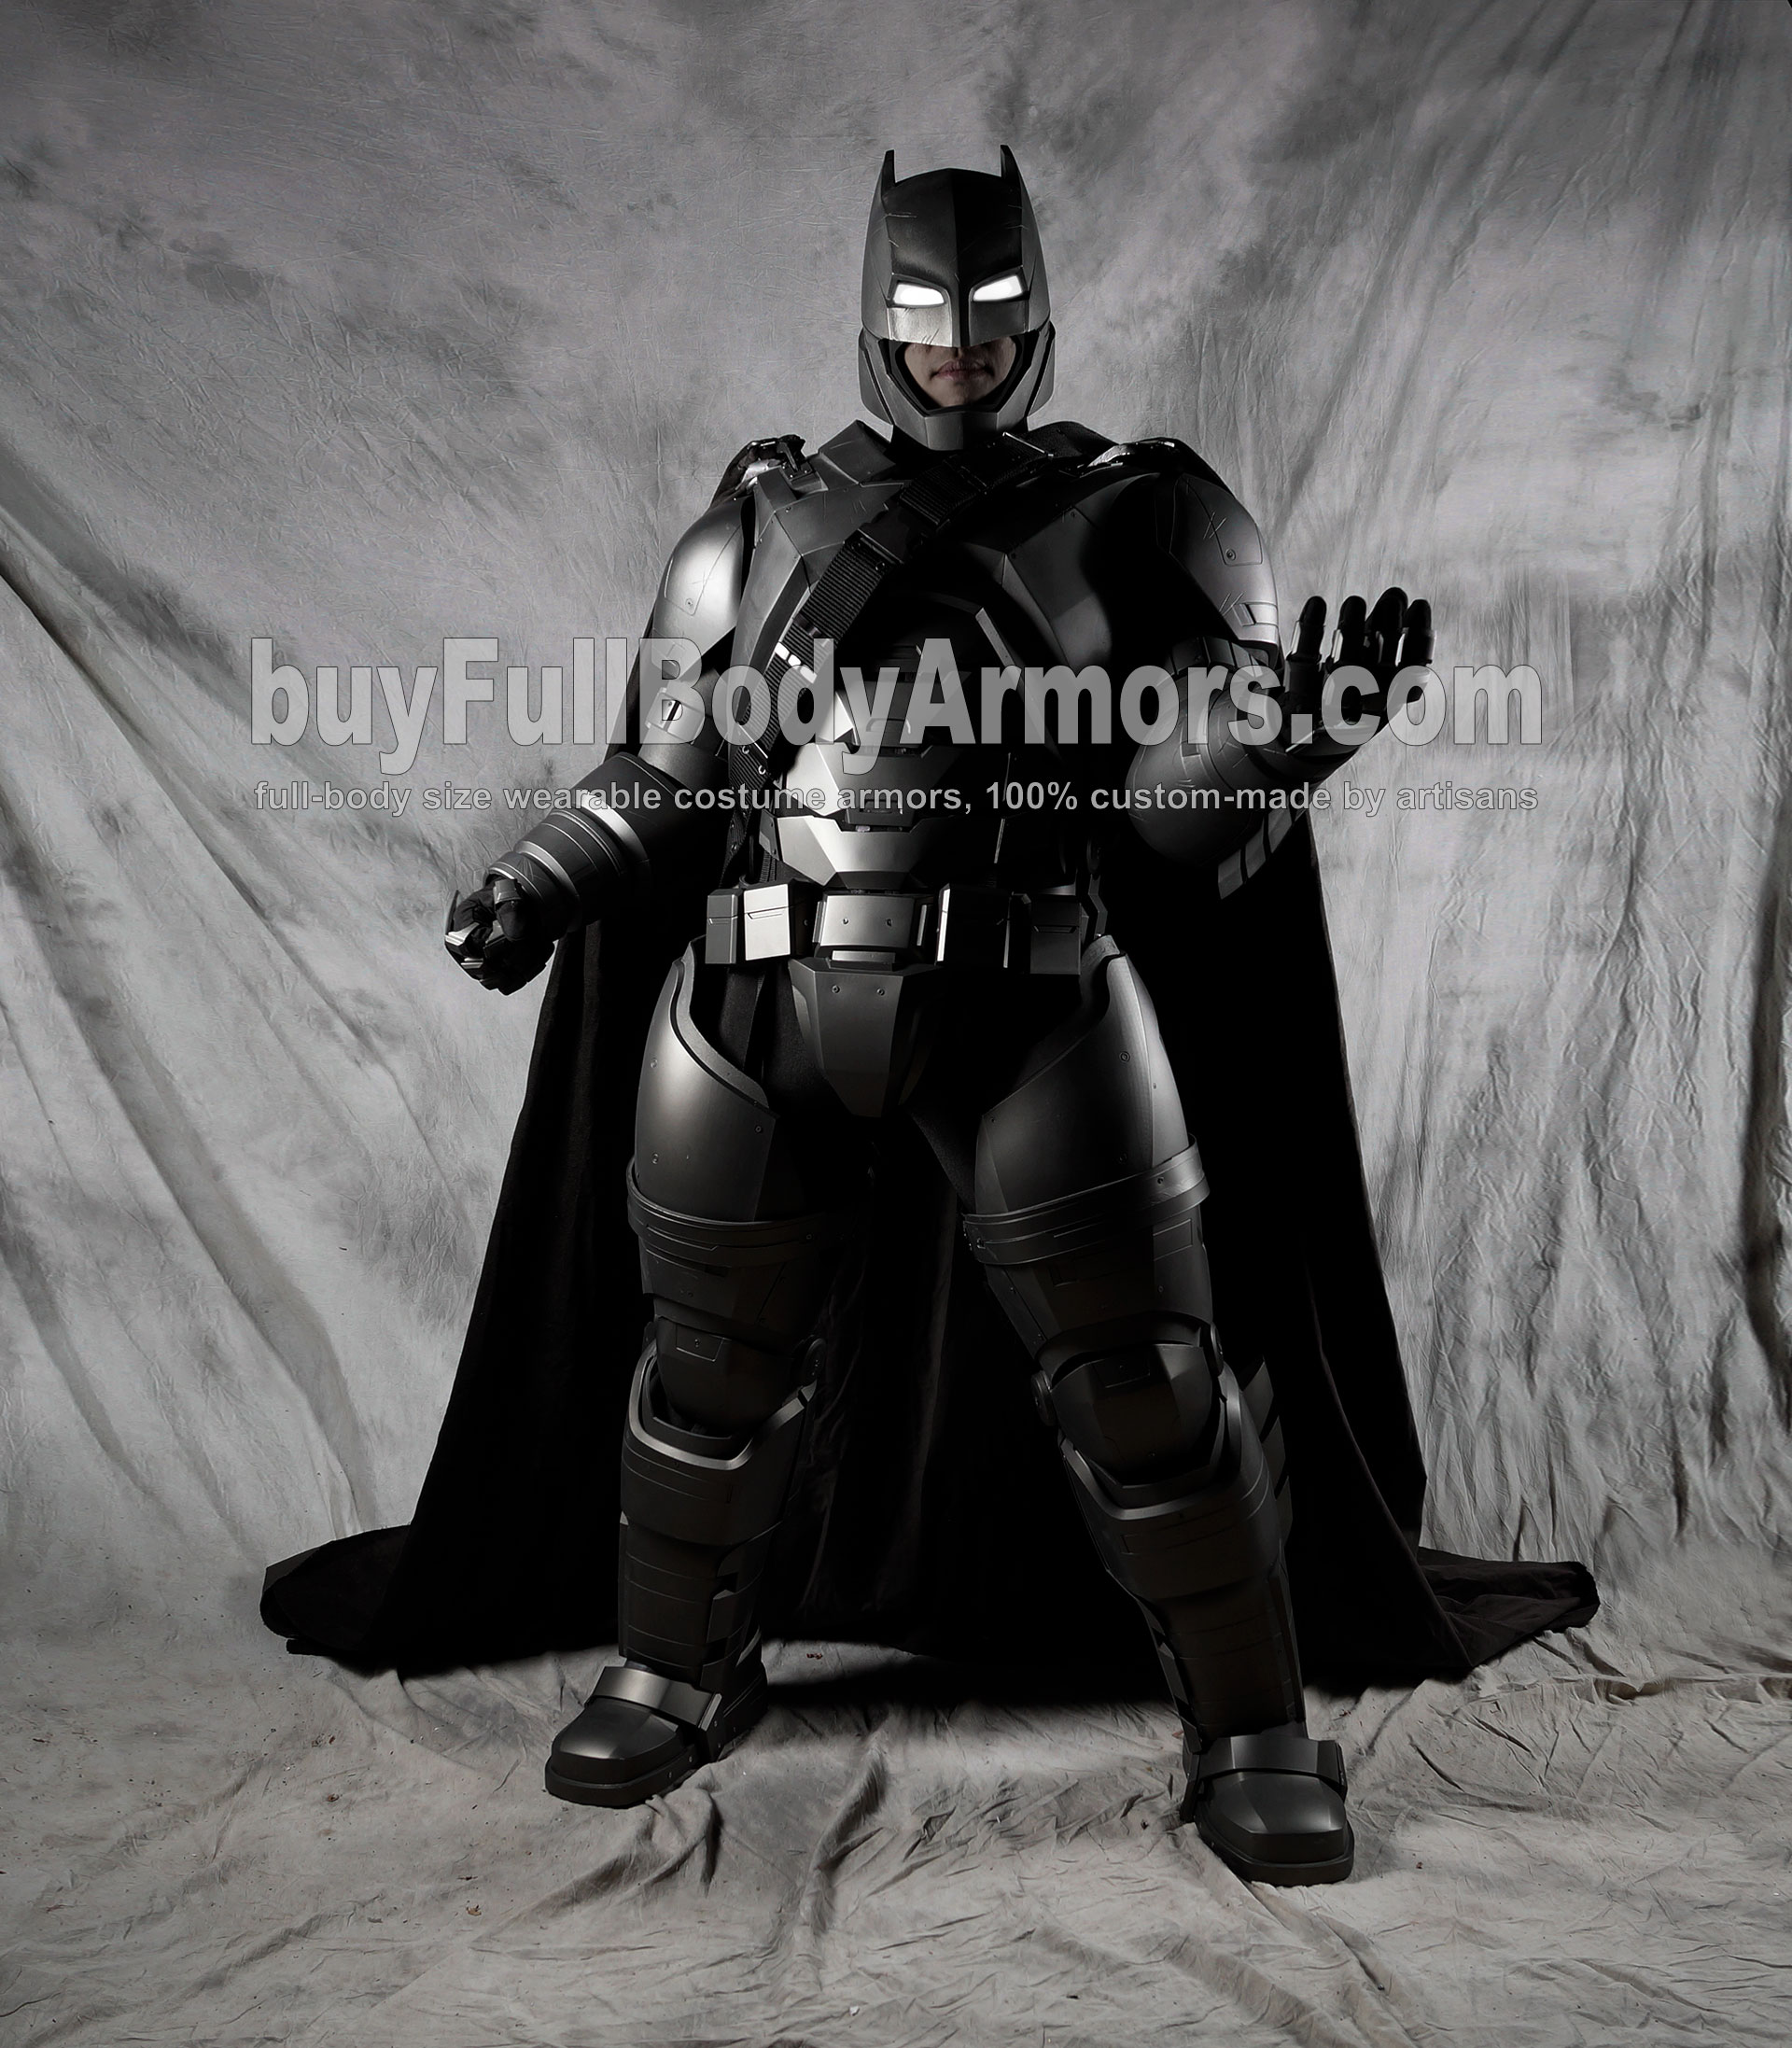 The Wearable Armored Batsuit (Batman armor suit costume) front power